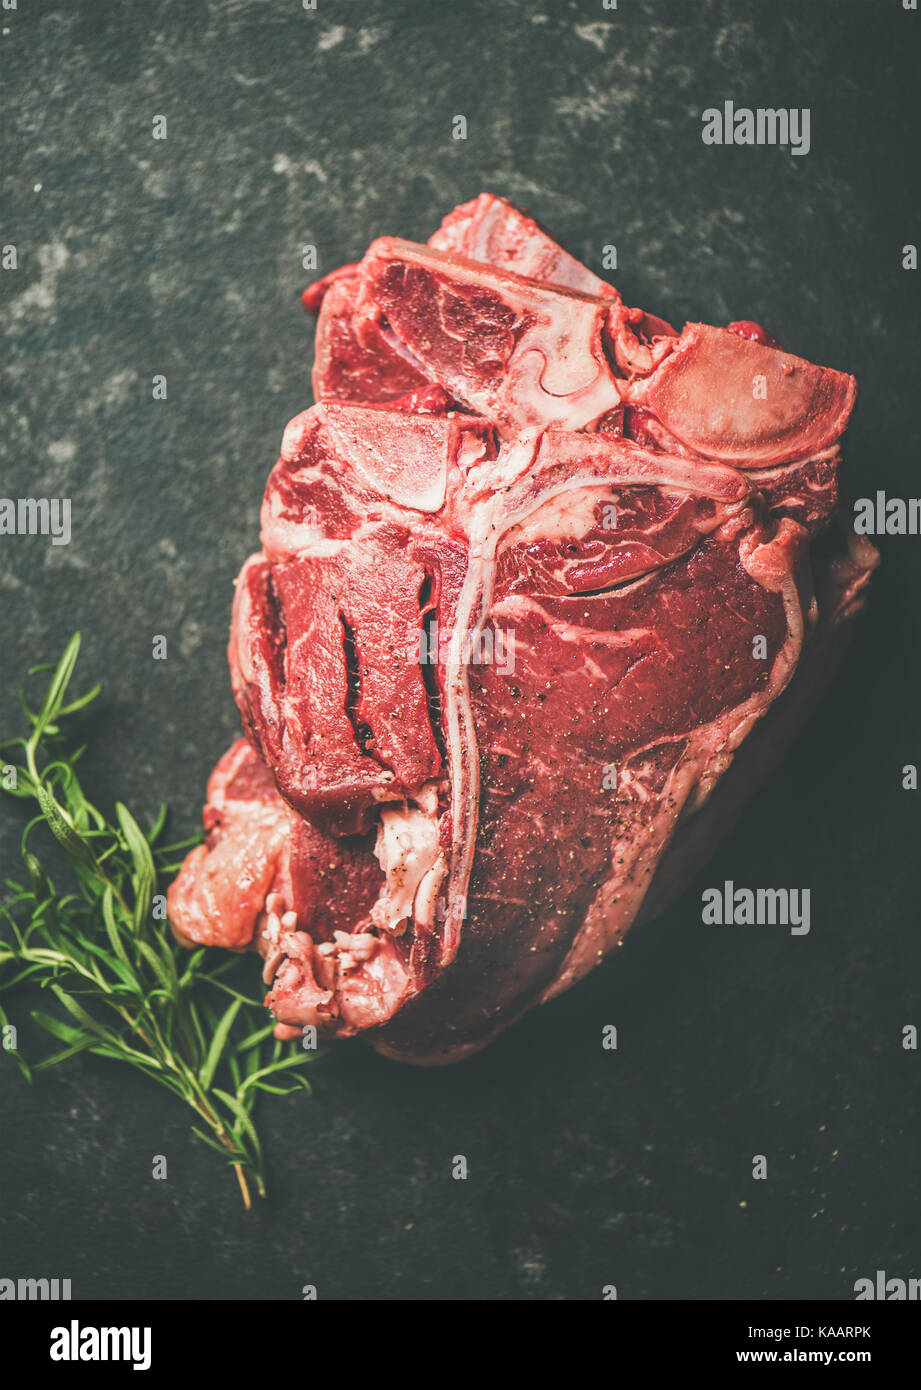 Fresh raw beef meat t-bone steaks with rosemary, black background - Stock Image